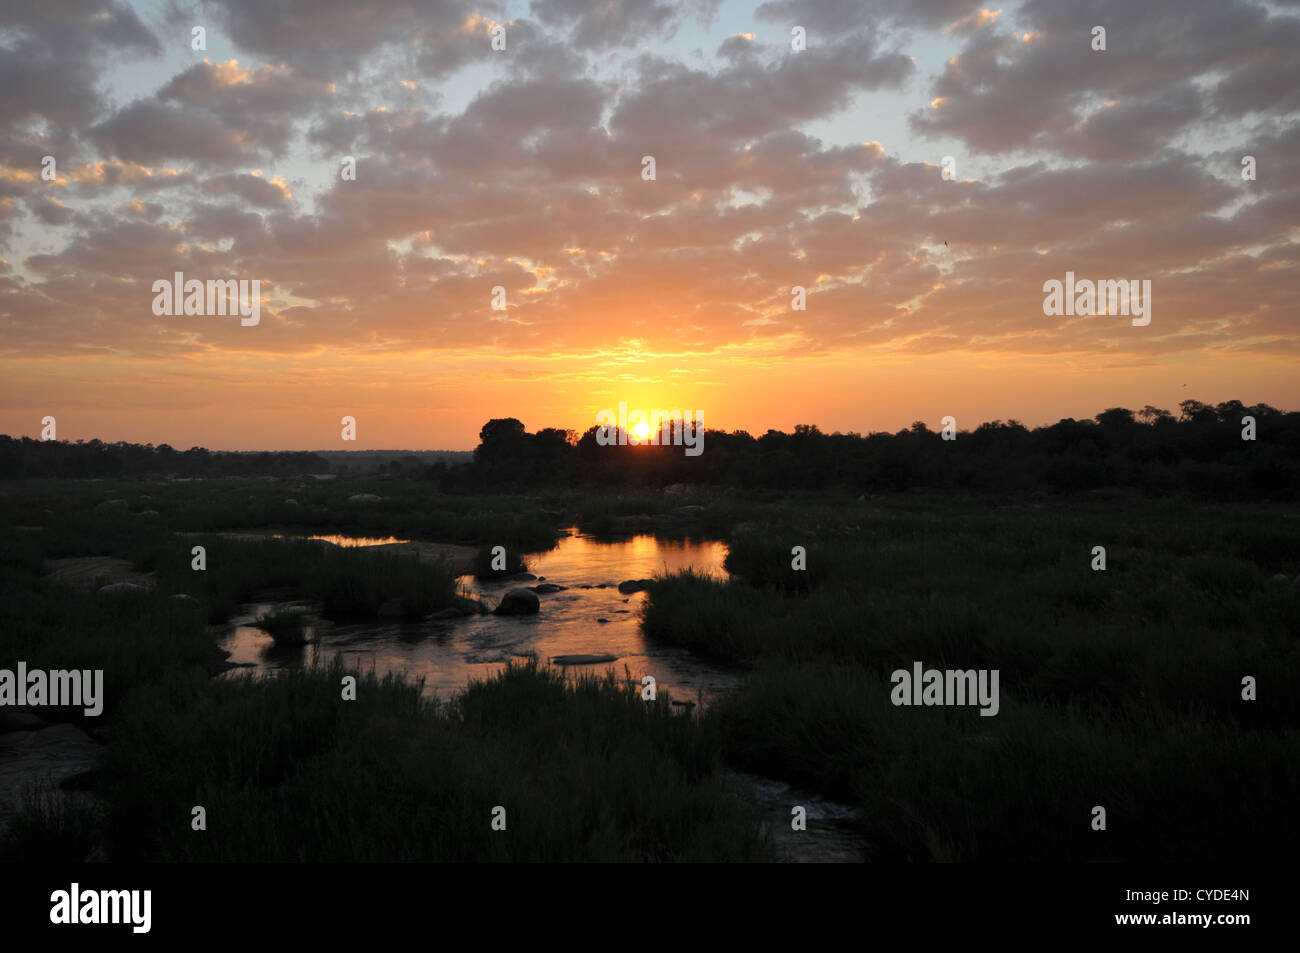 Sunrise at Kruger Park by Kruger Gate in South Africa. View into the sun over the water. - Stock Image